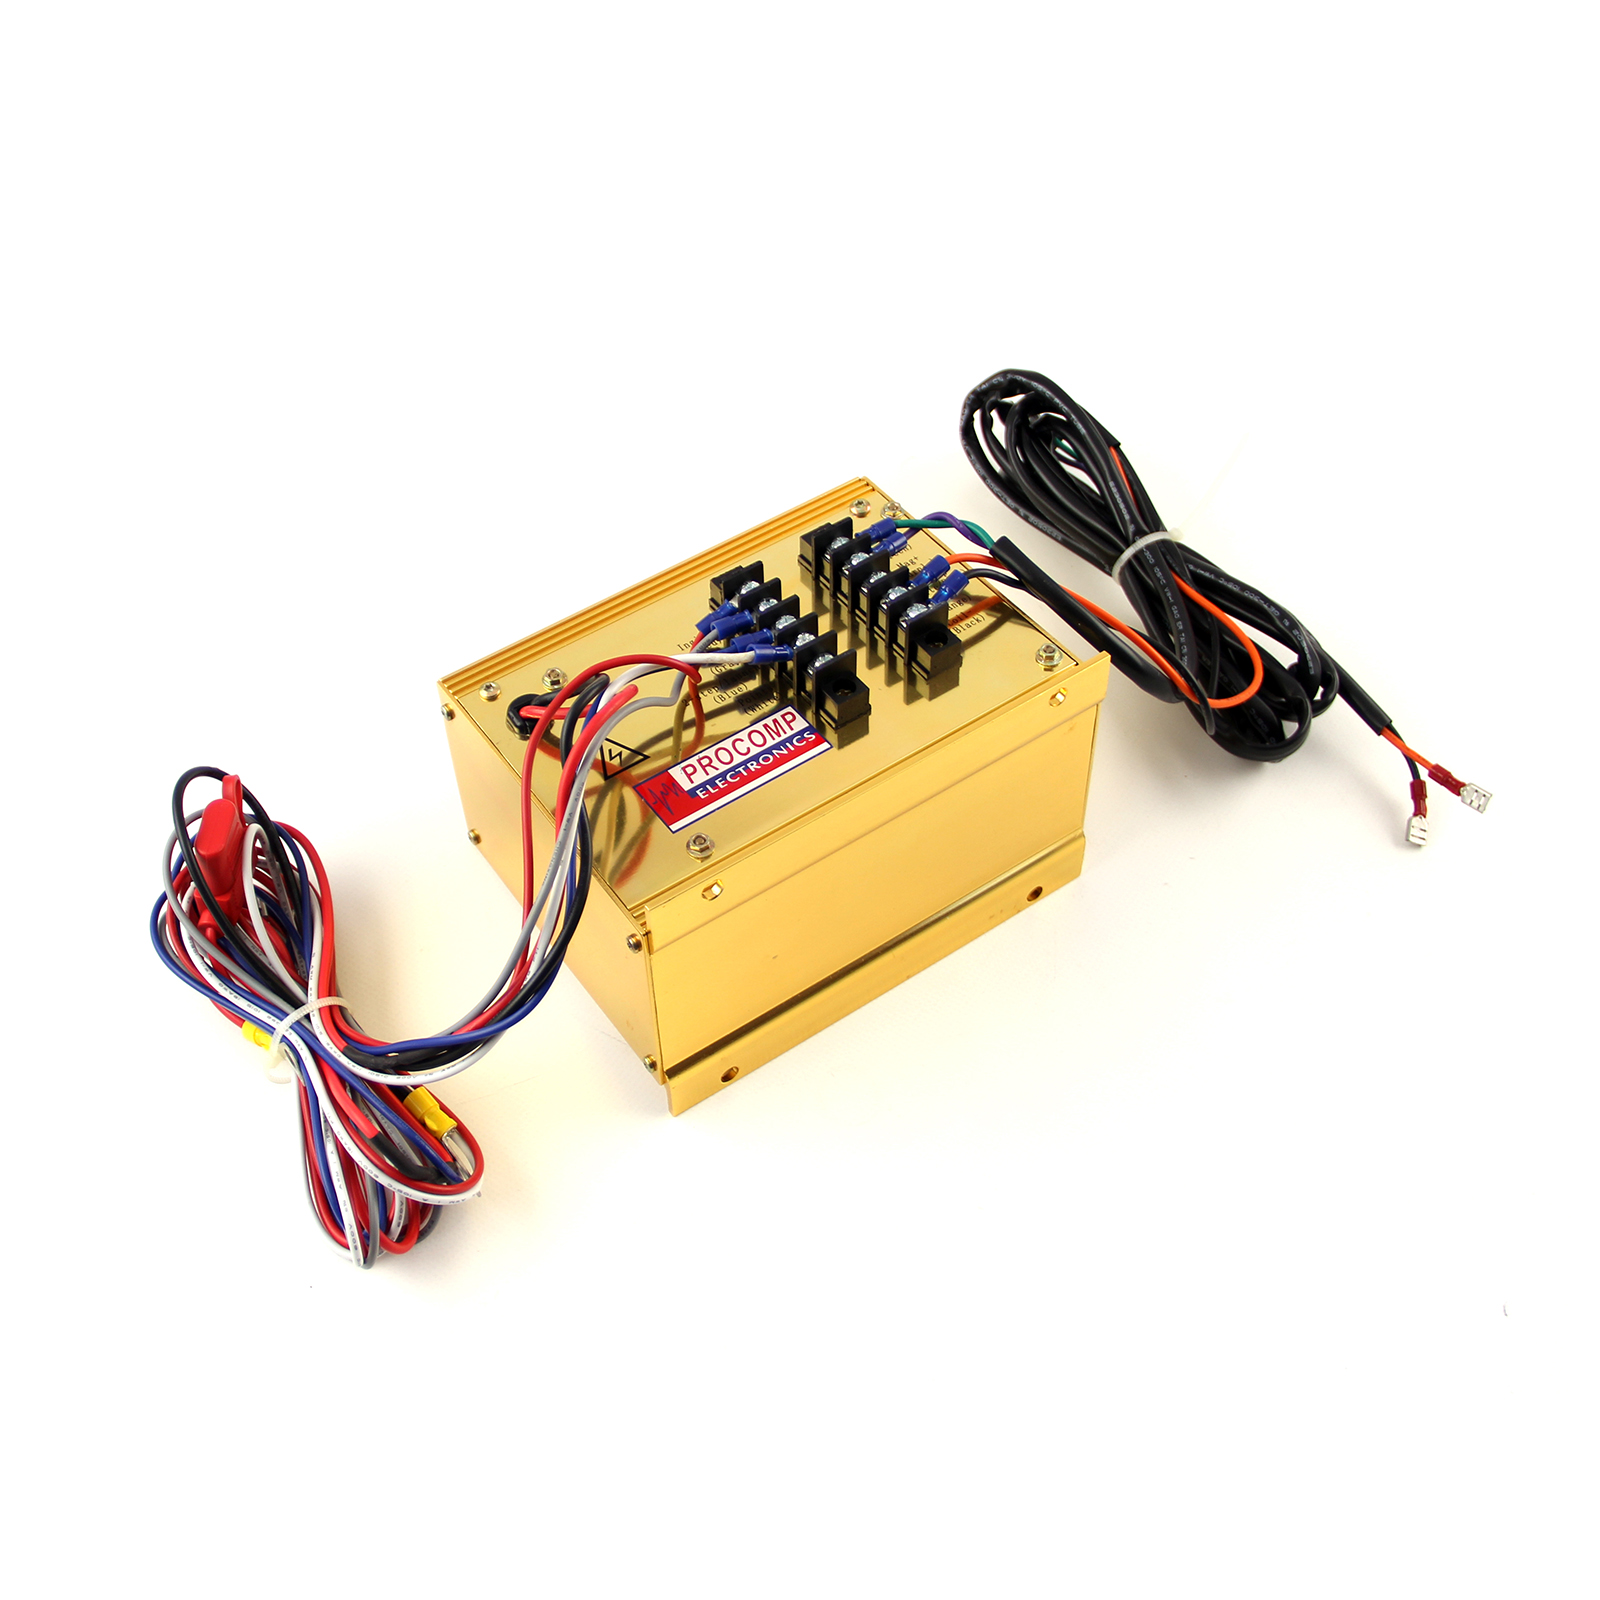 Multiple Spark Cdi Capacitor Discharge Race Only Ignition